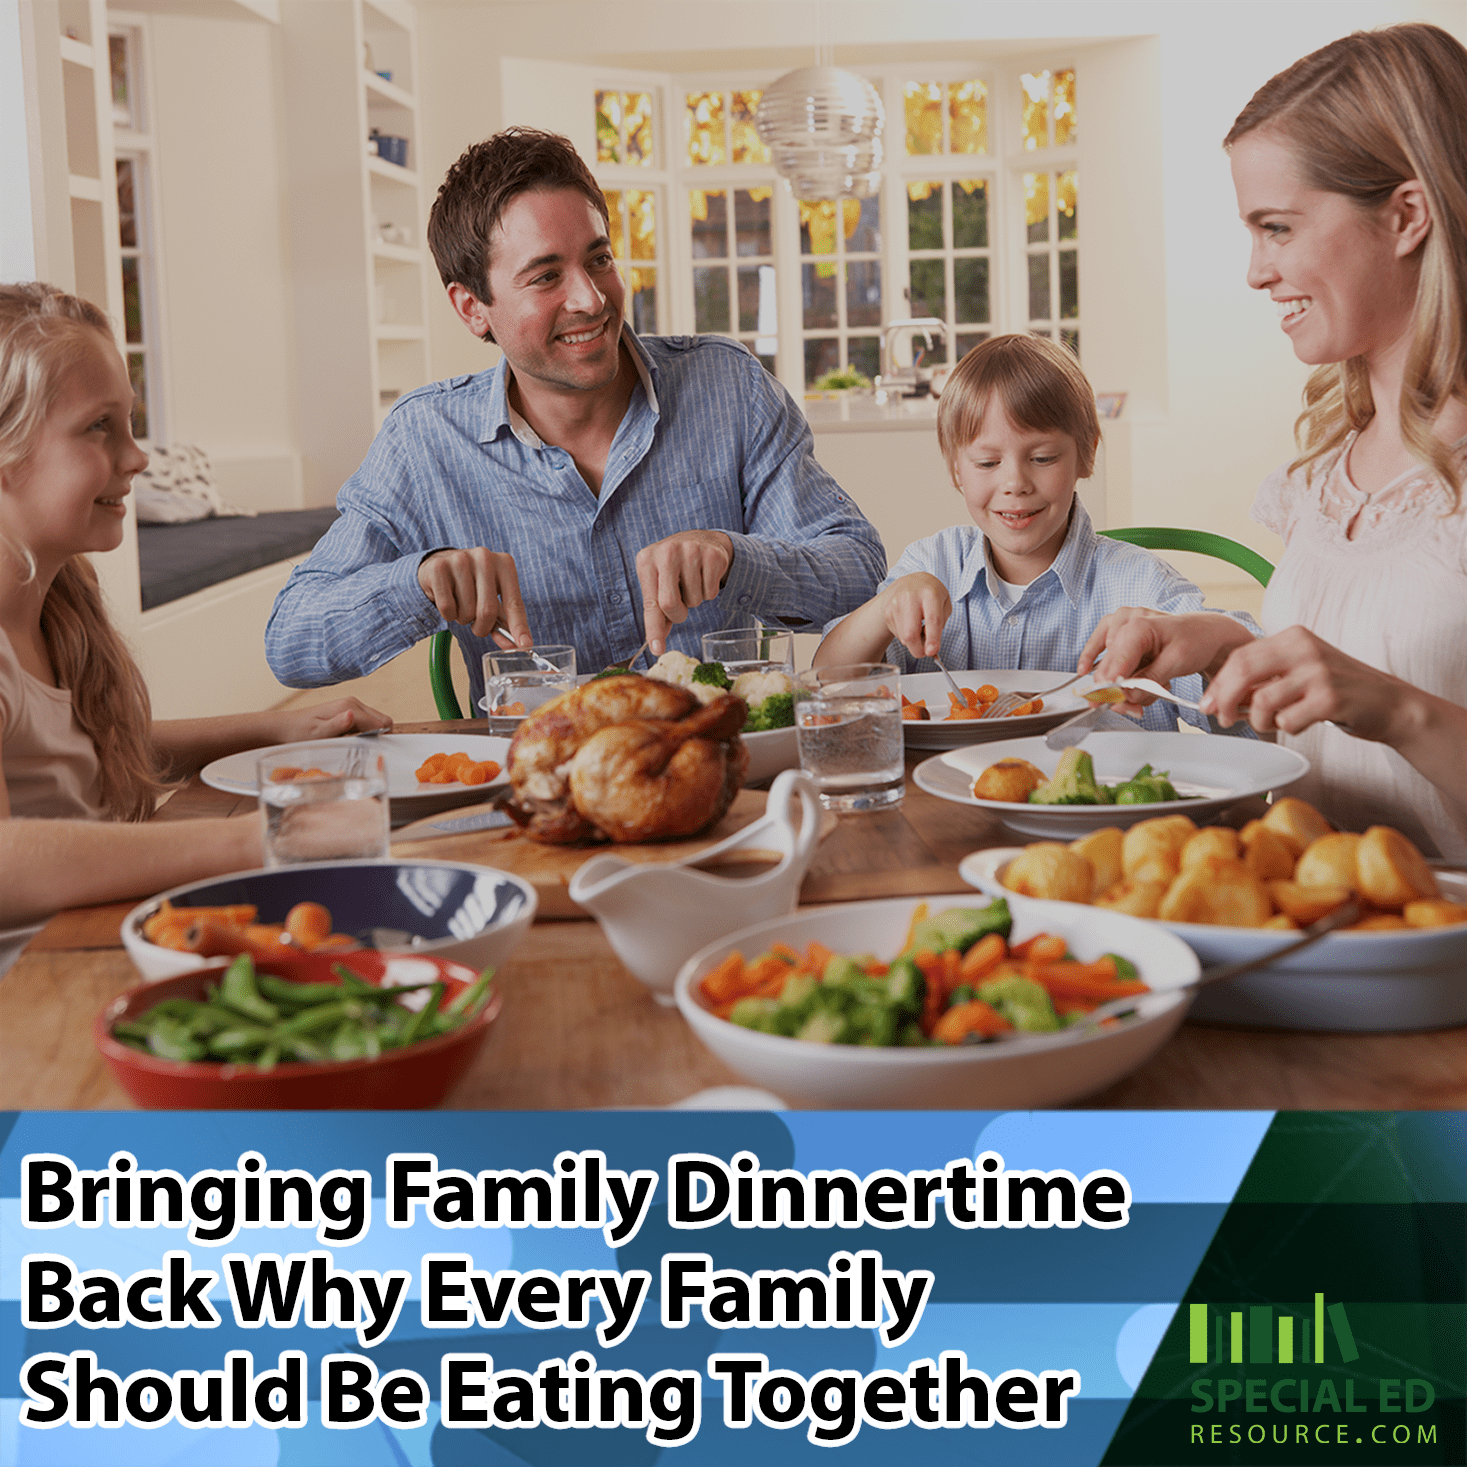 Family dinnertime with the whole family eating together and enjoying it!